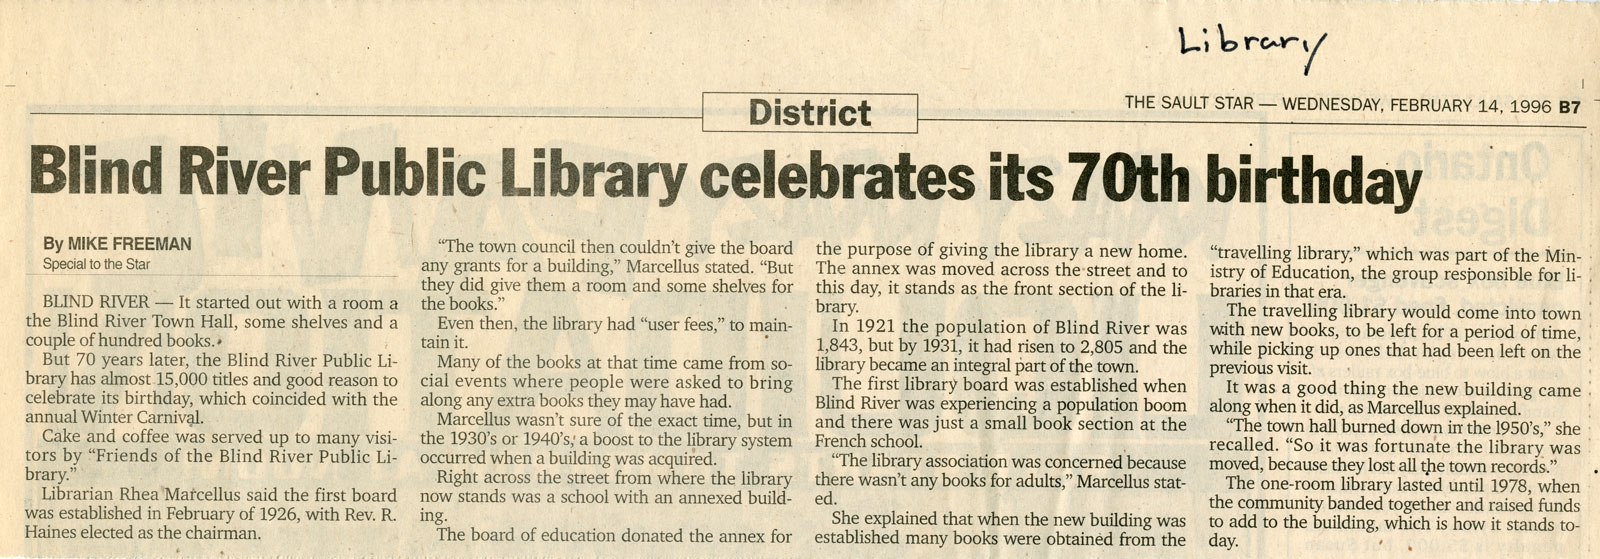 Blind River Library Celebrates Its 70th Birthday, 1996